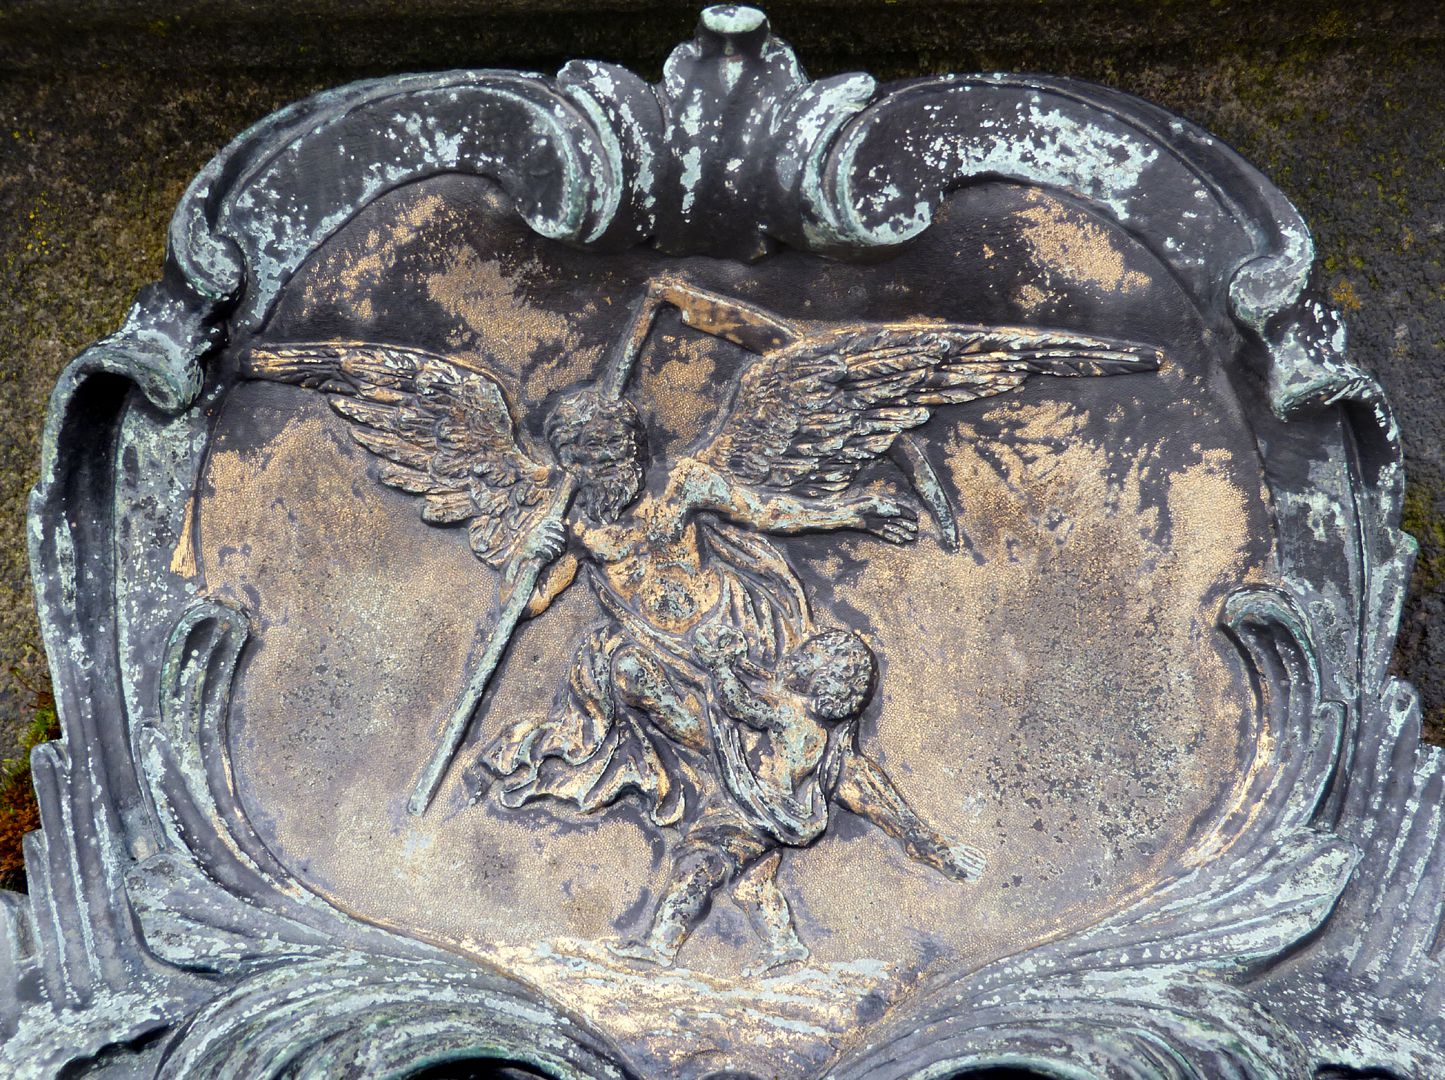 Tomb of Daniel Weidner and his spouse Maria Regina Leutner Rococo cartouche at the west side, winged death with sickle taking a child